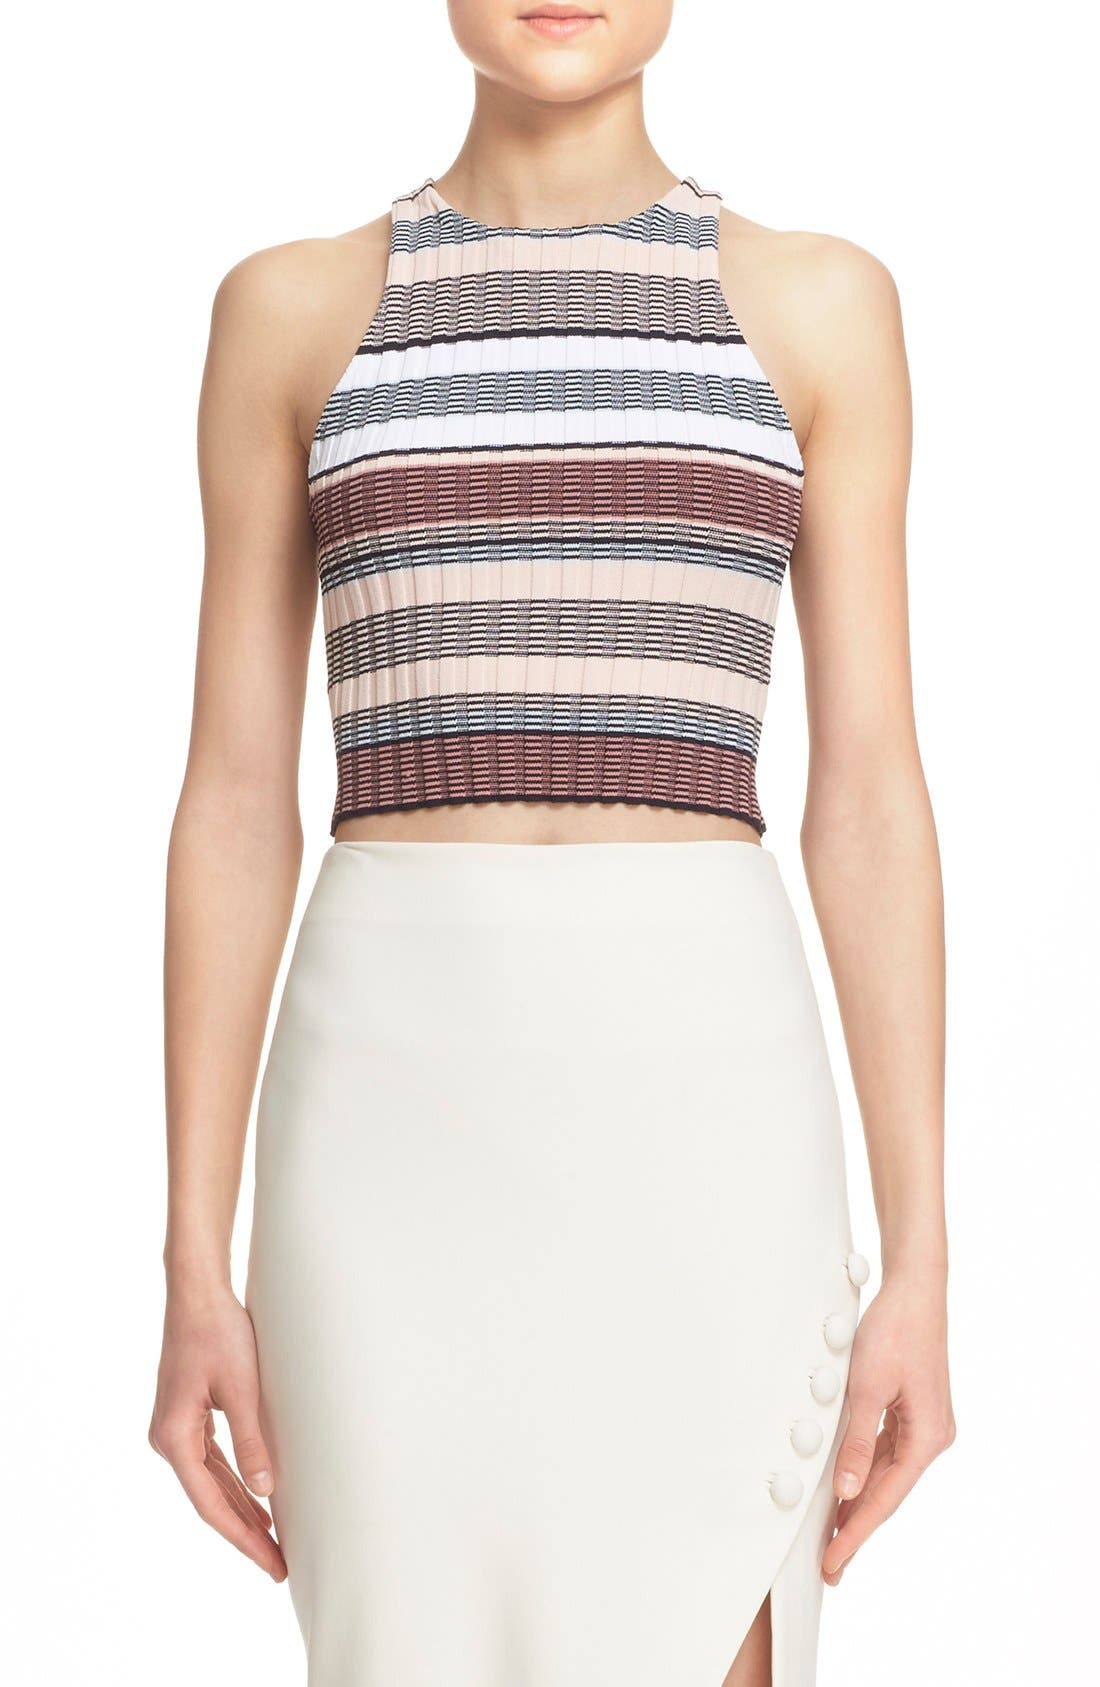 Alternate Image 1 Selected - Elizabeth and James Stripe Racerback Crop Top